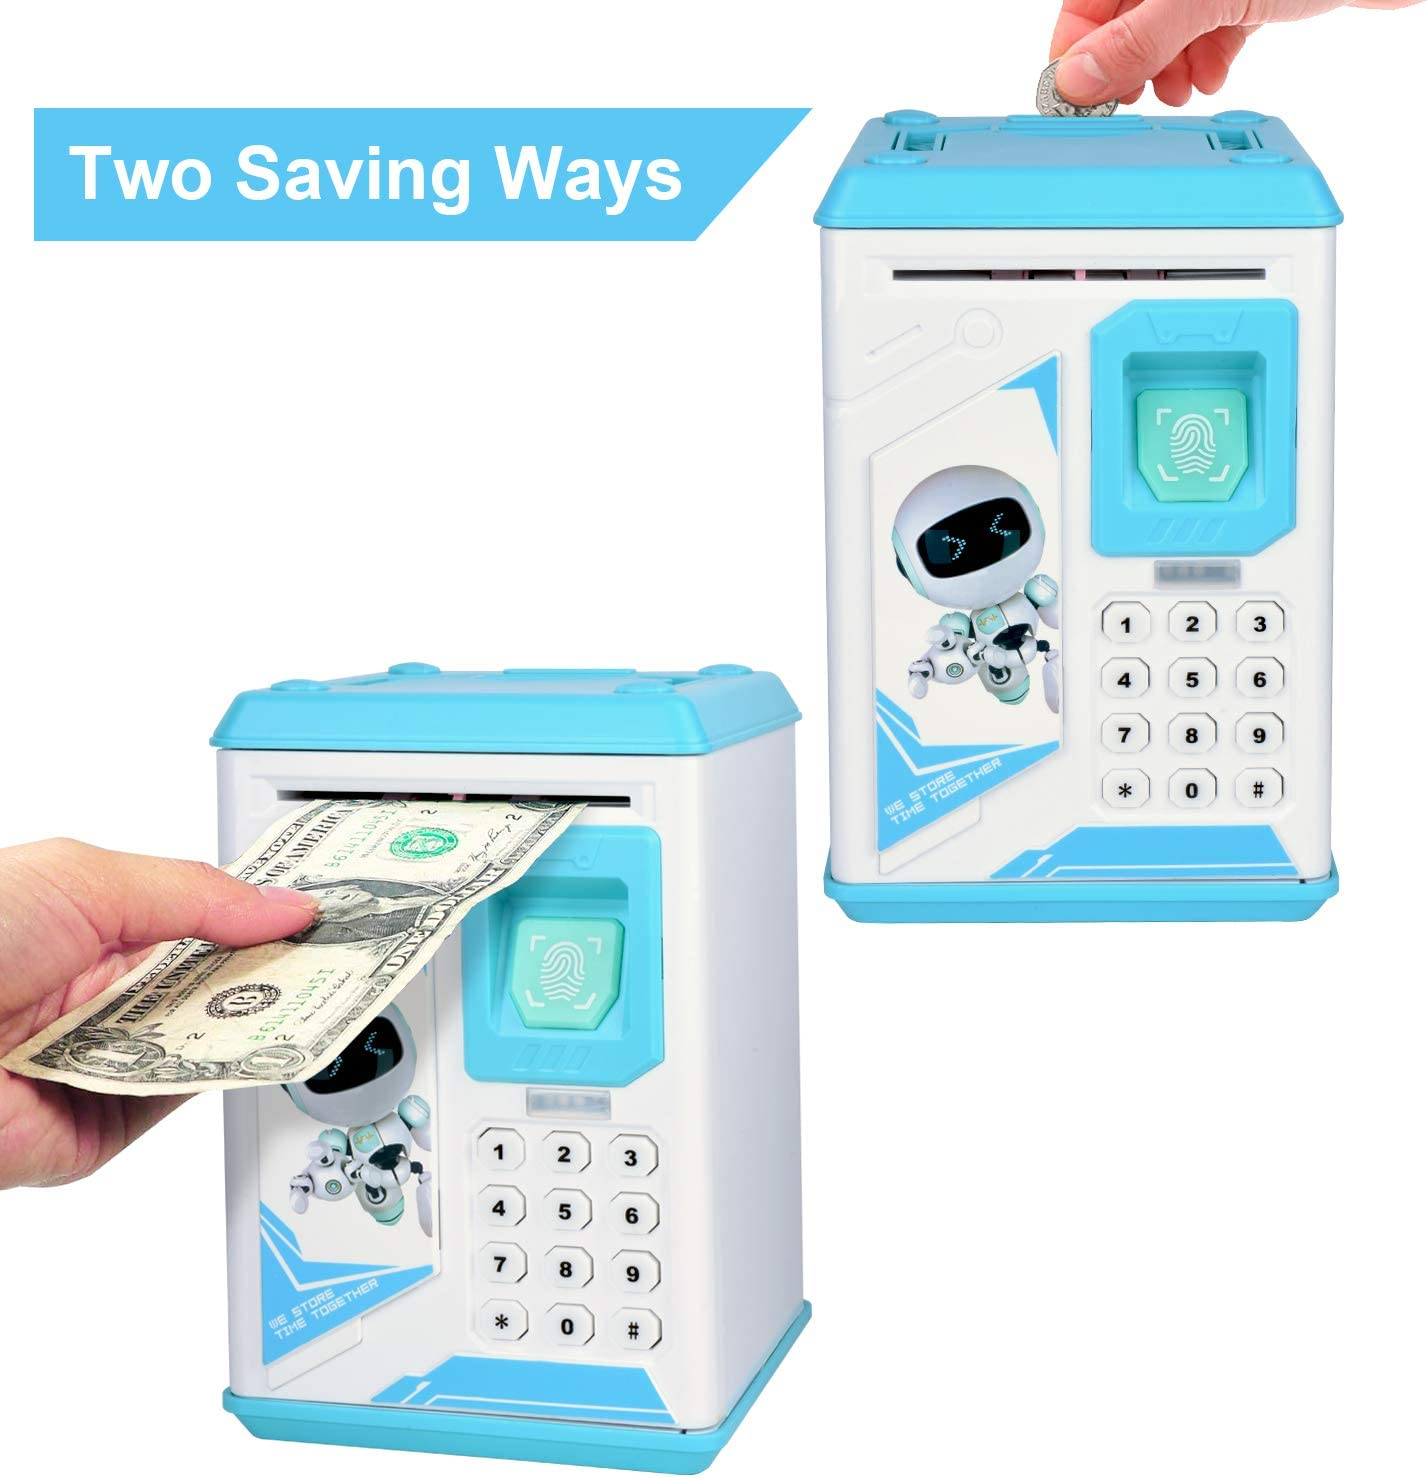 Lefree Mini ATM Electronic Coin Bank,Smart Electronic Piggy Bank, Safe with Password Mini ATM Bank,Mini ATM Electronic Coin Bank Box for Children